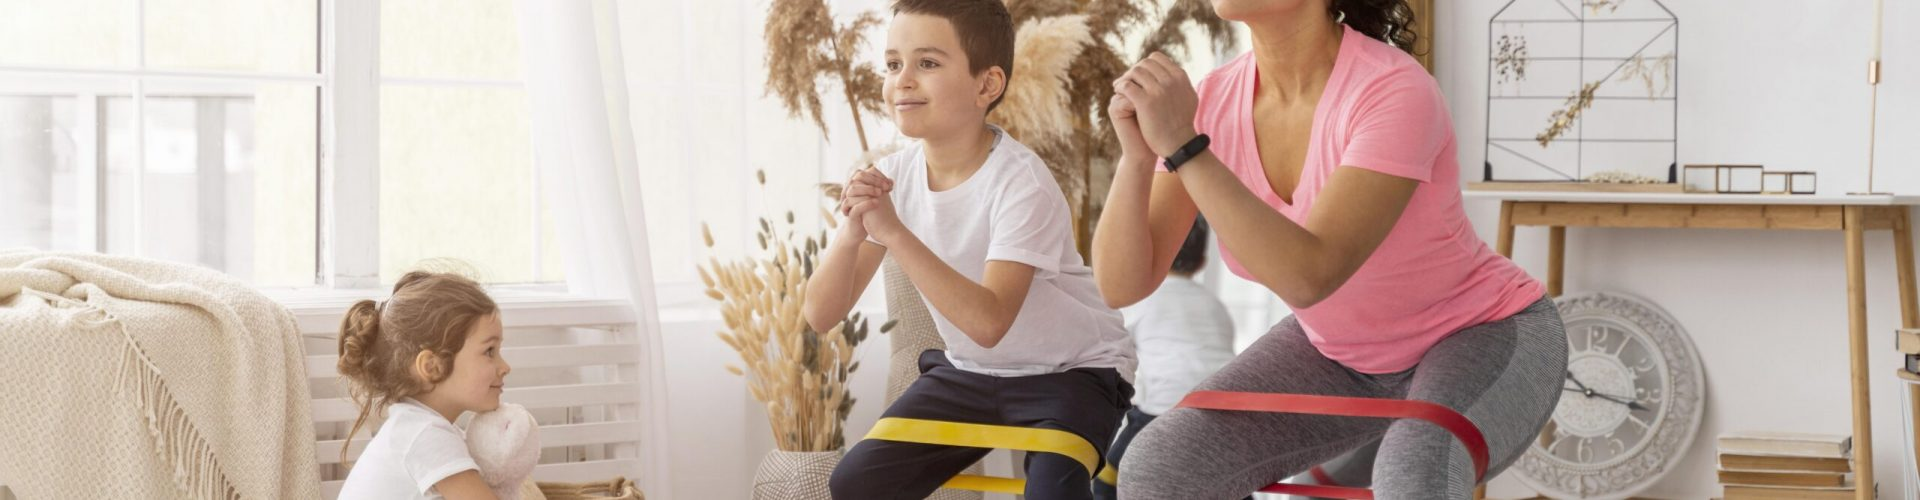 kids-adult-training-with-resistance-band